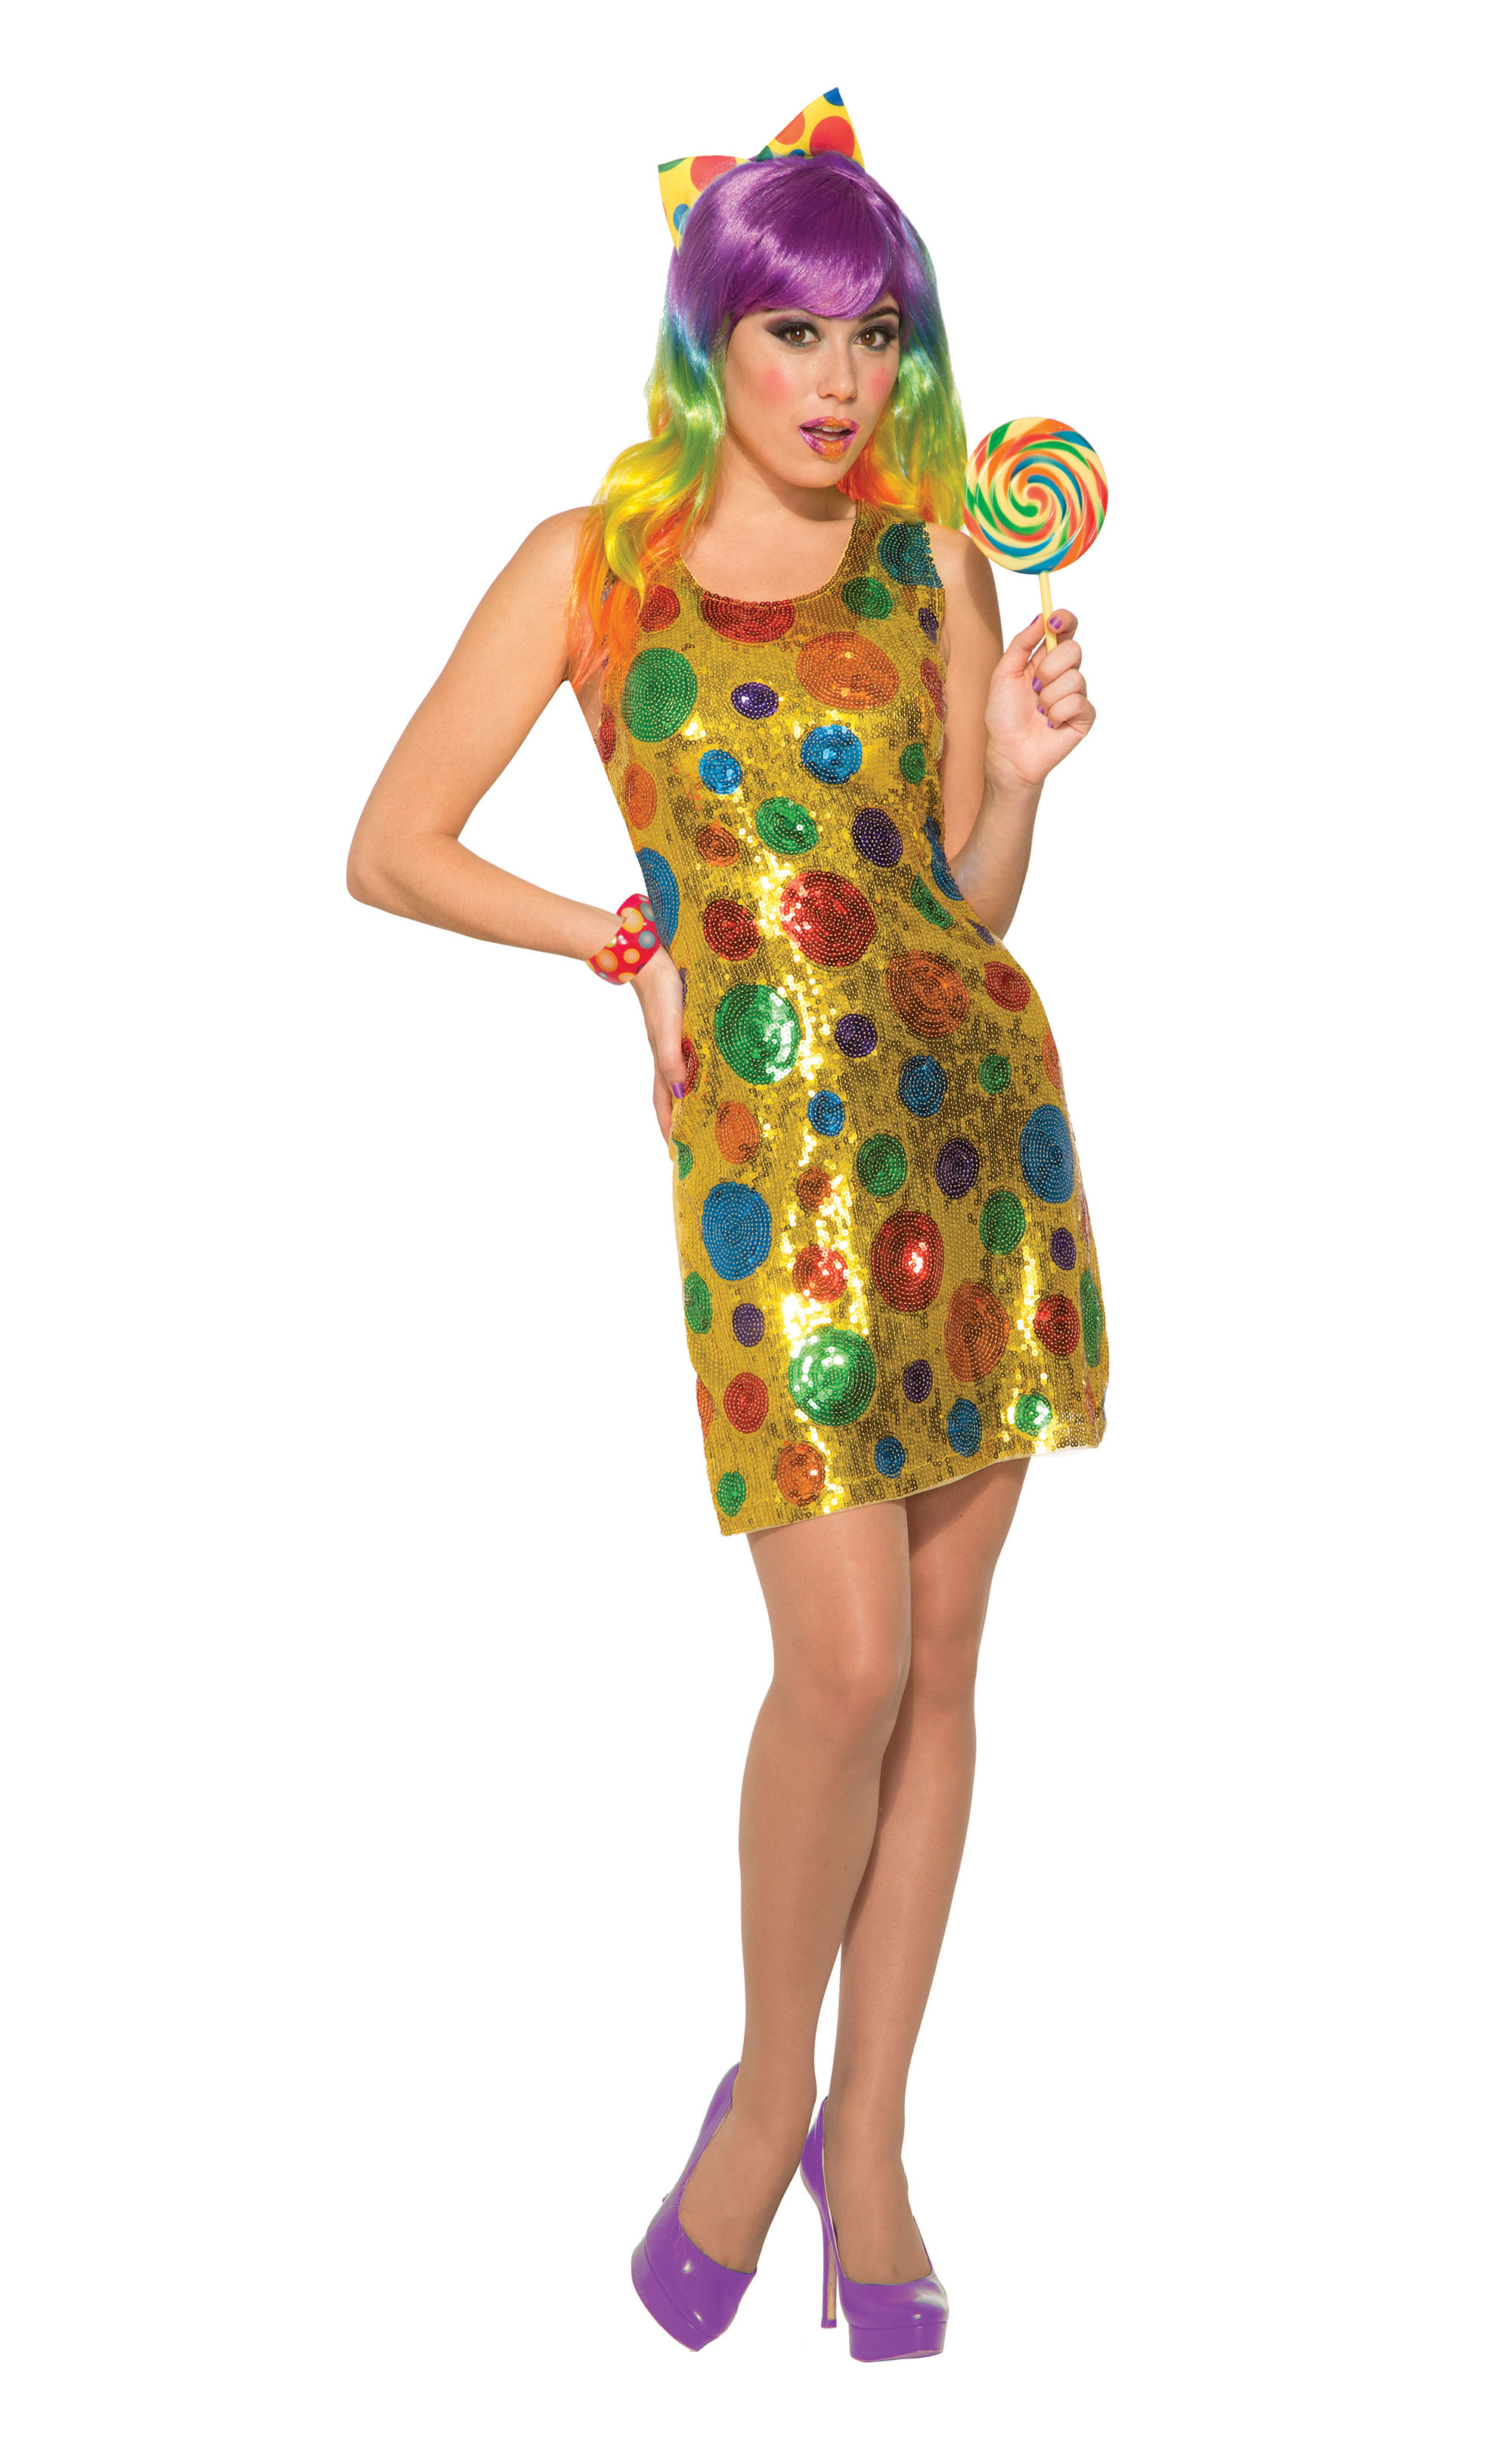 Clown Polka Dot Sequin Dress Fancy Dress Costume Outfit Womens Adult UK 10-12